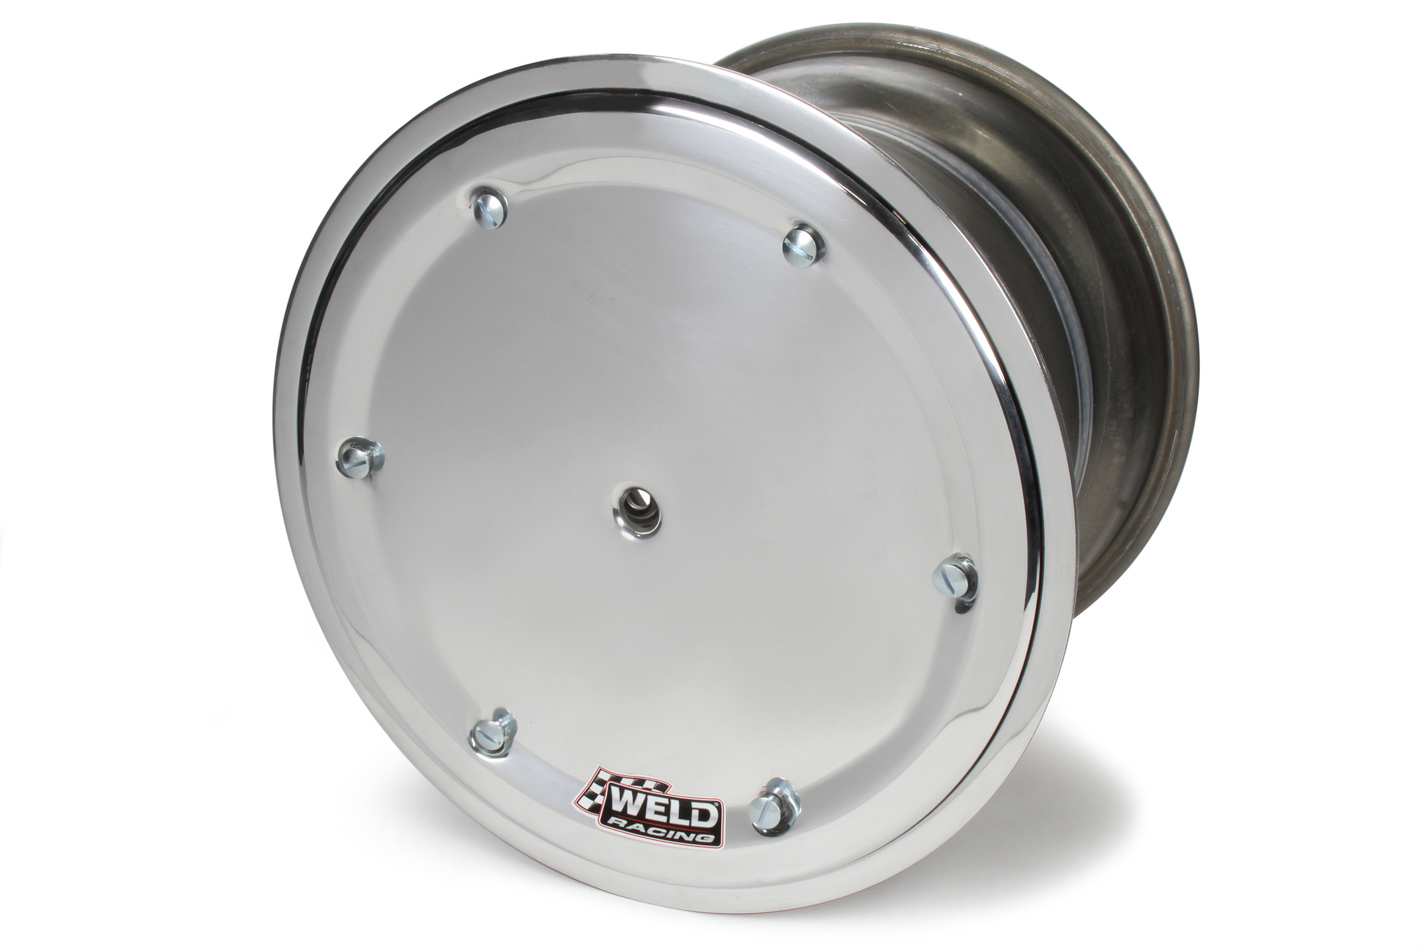 WELD RACING 15 X 14 Wide 5 HS 5in BS Bead-Loc 17.5 w/Cvr P/N - 571-5455-6